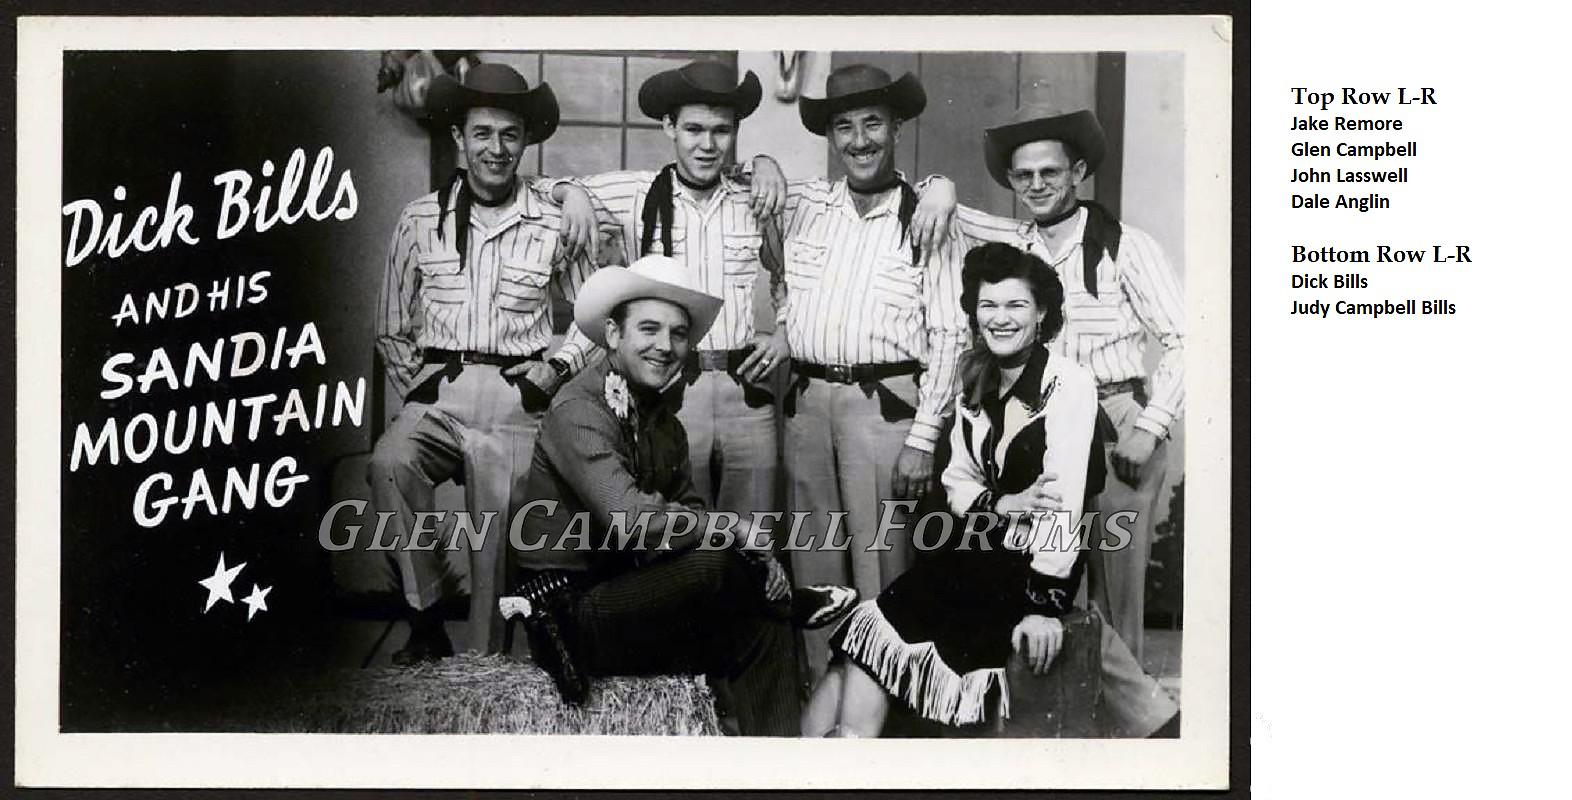 Dick Bills and the Sandia Mountain Gang.jpg